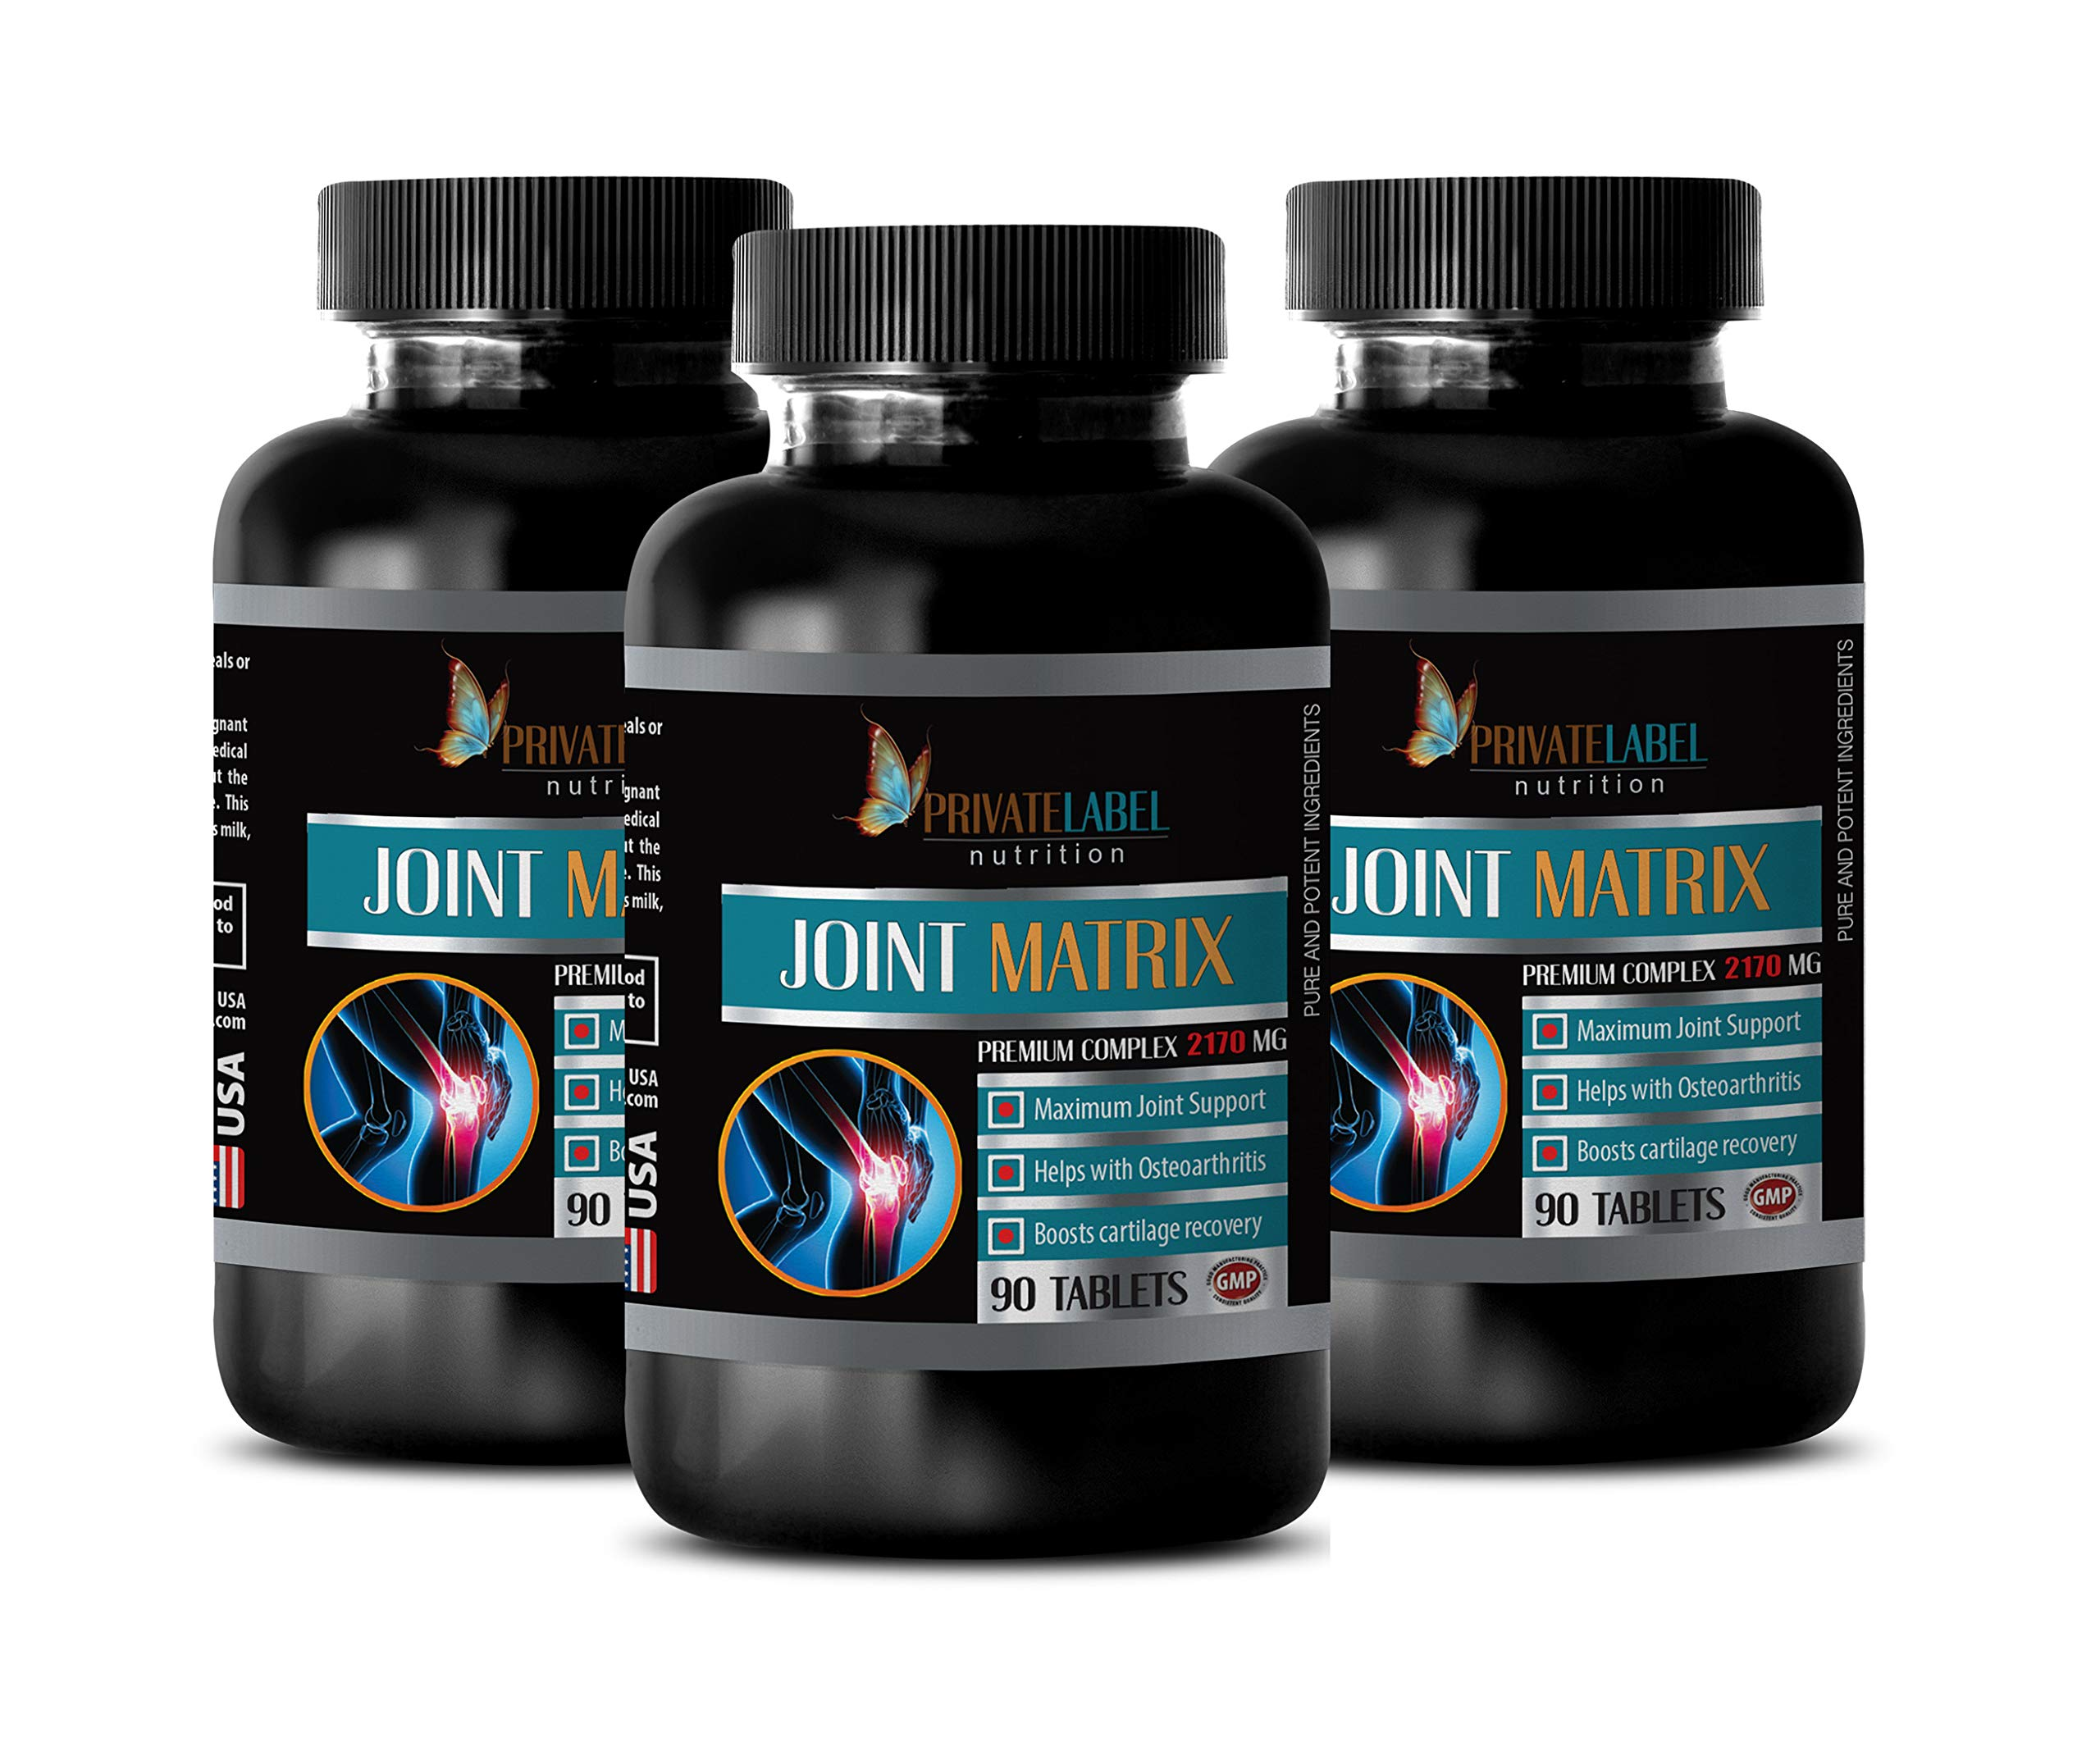 Bone Support Supplements - Joint Matrix Premium Complex 2170MG - zinc with Copper Supplement - 3 Bottles 270 Tablets